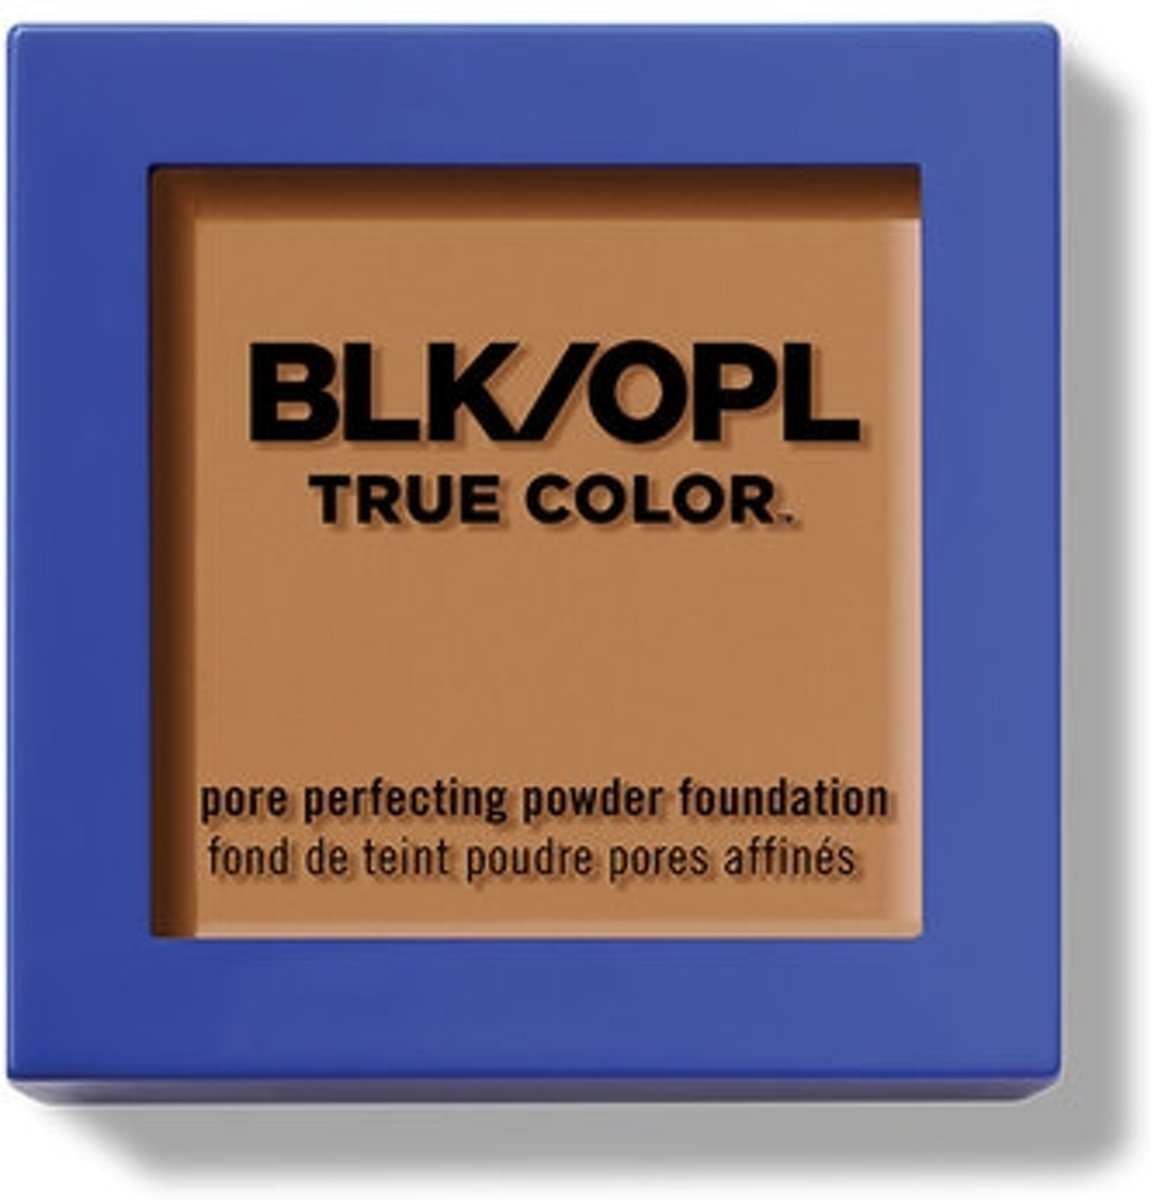 Black Opal True Color Pore Perfecting Powder Foundation